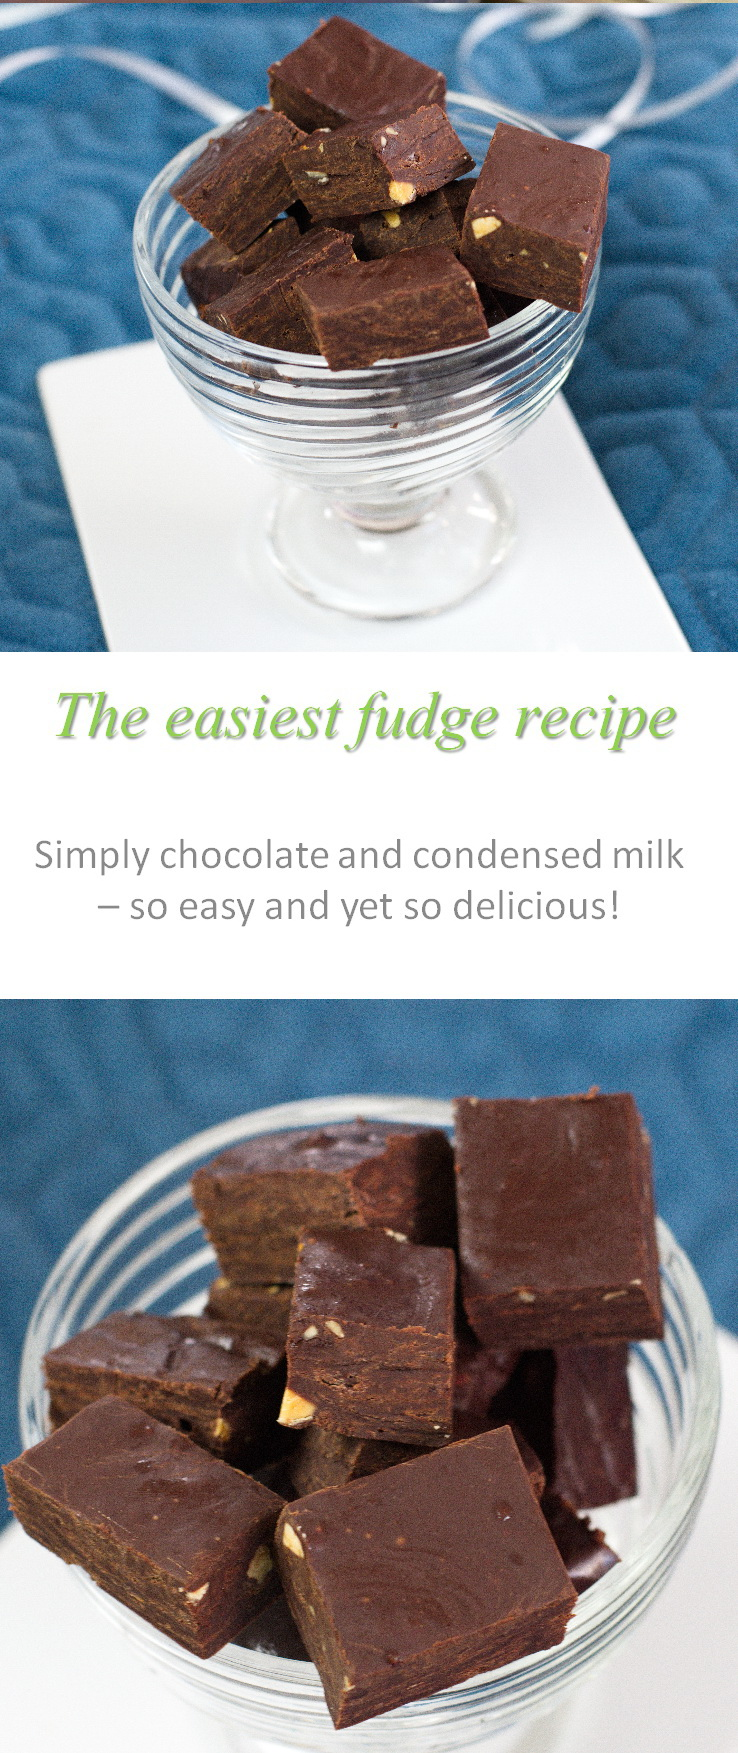 Simply add chocolate to condensed milk, chill, and you have an extremely awesome and easy fudge!  And the dairy-free version is as good, if not better! #fudge